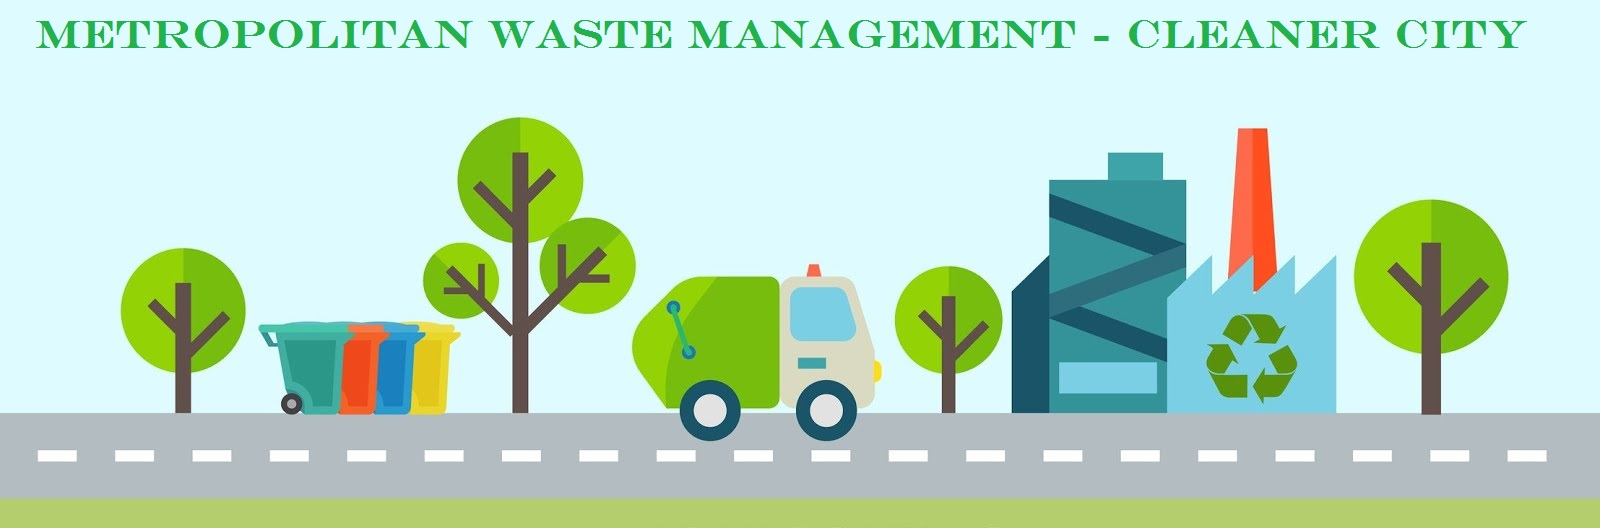 Metropolitan Waste Management - Cleaner City